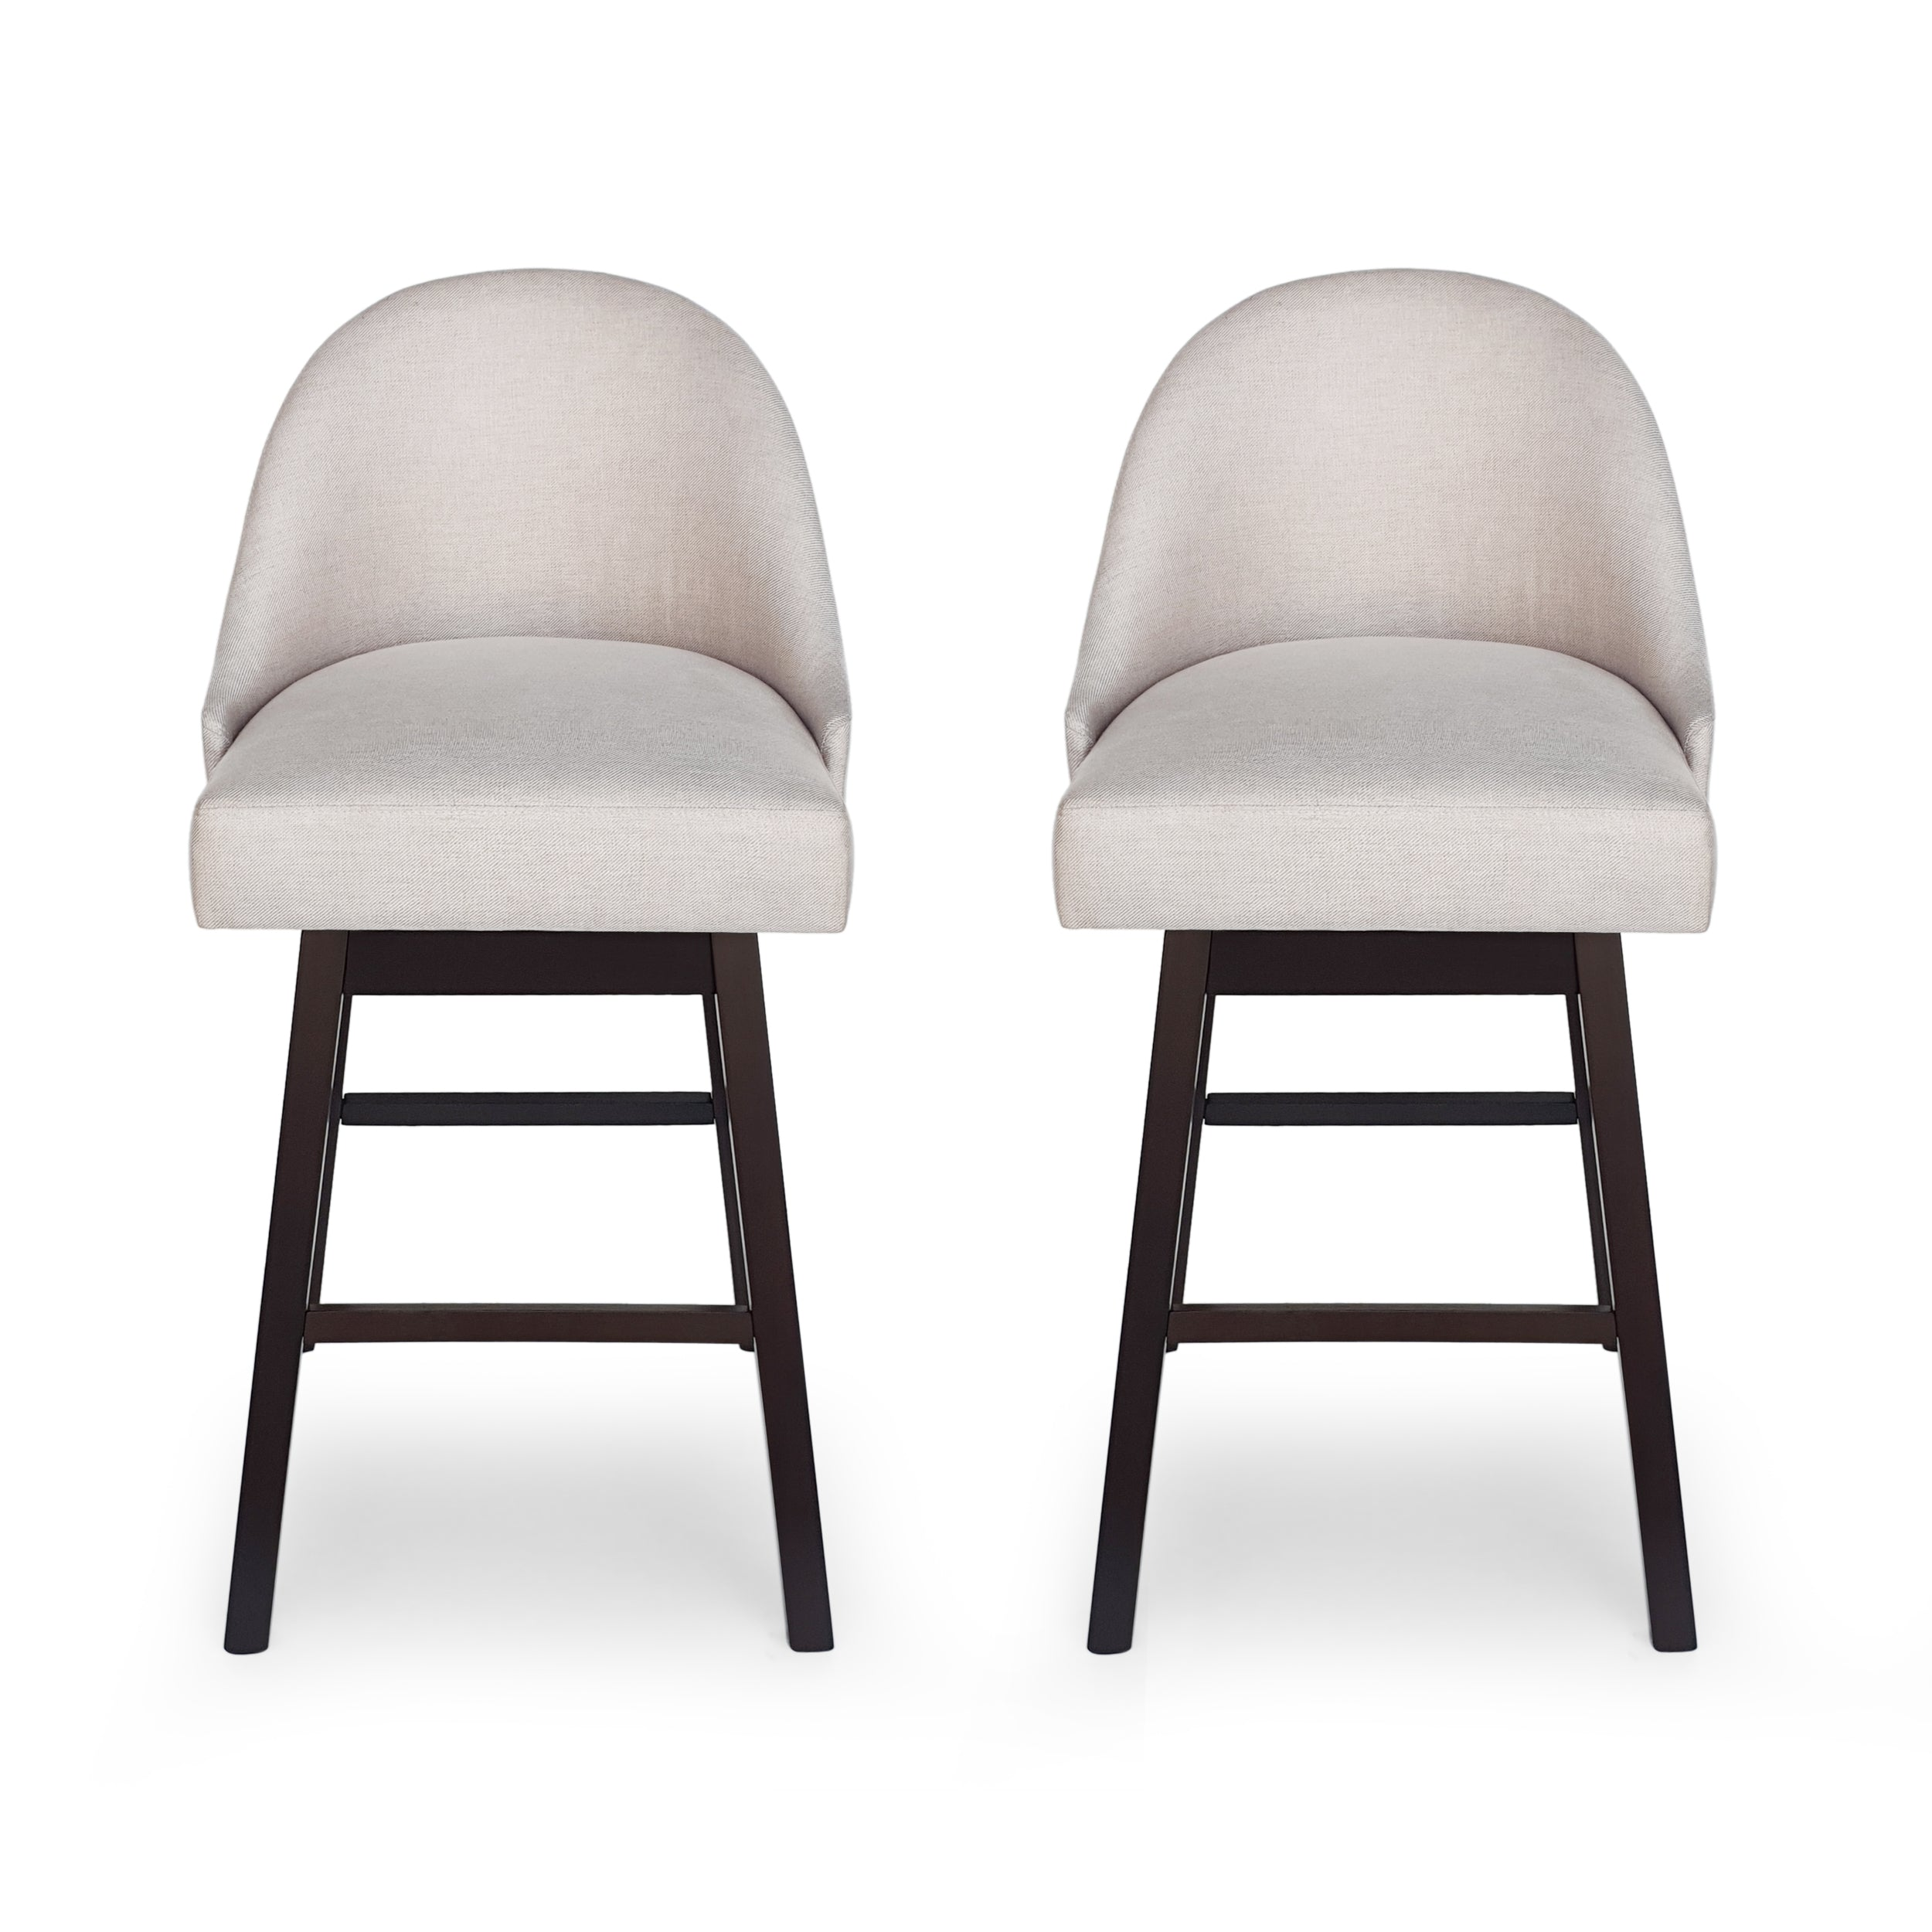 Andriel Modern Upholstered Swivel Bar Stool